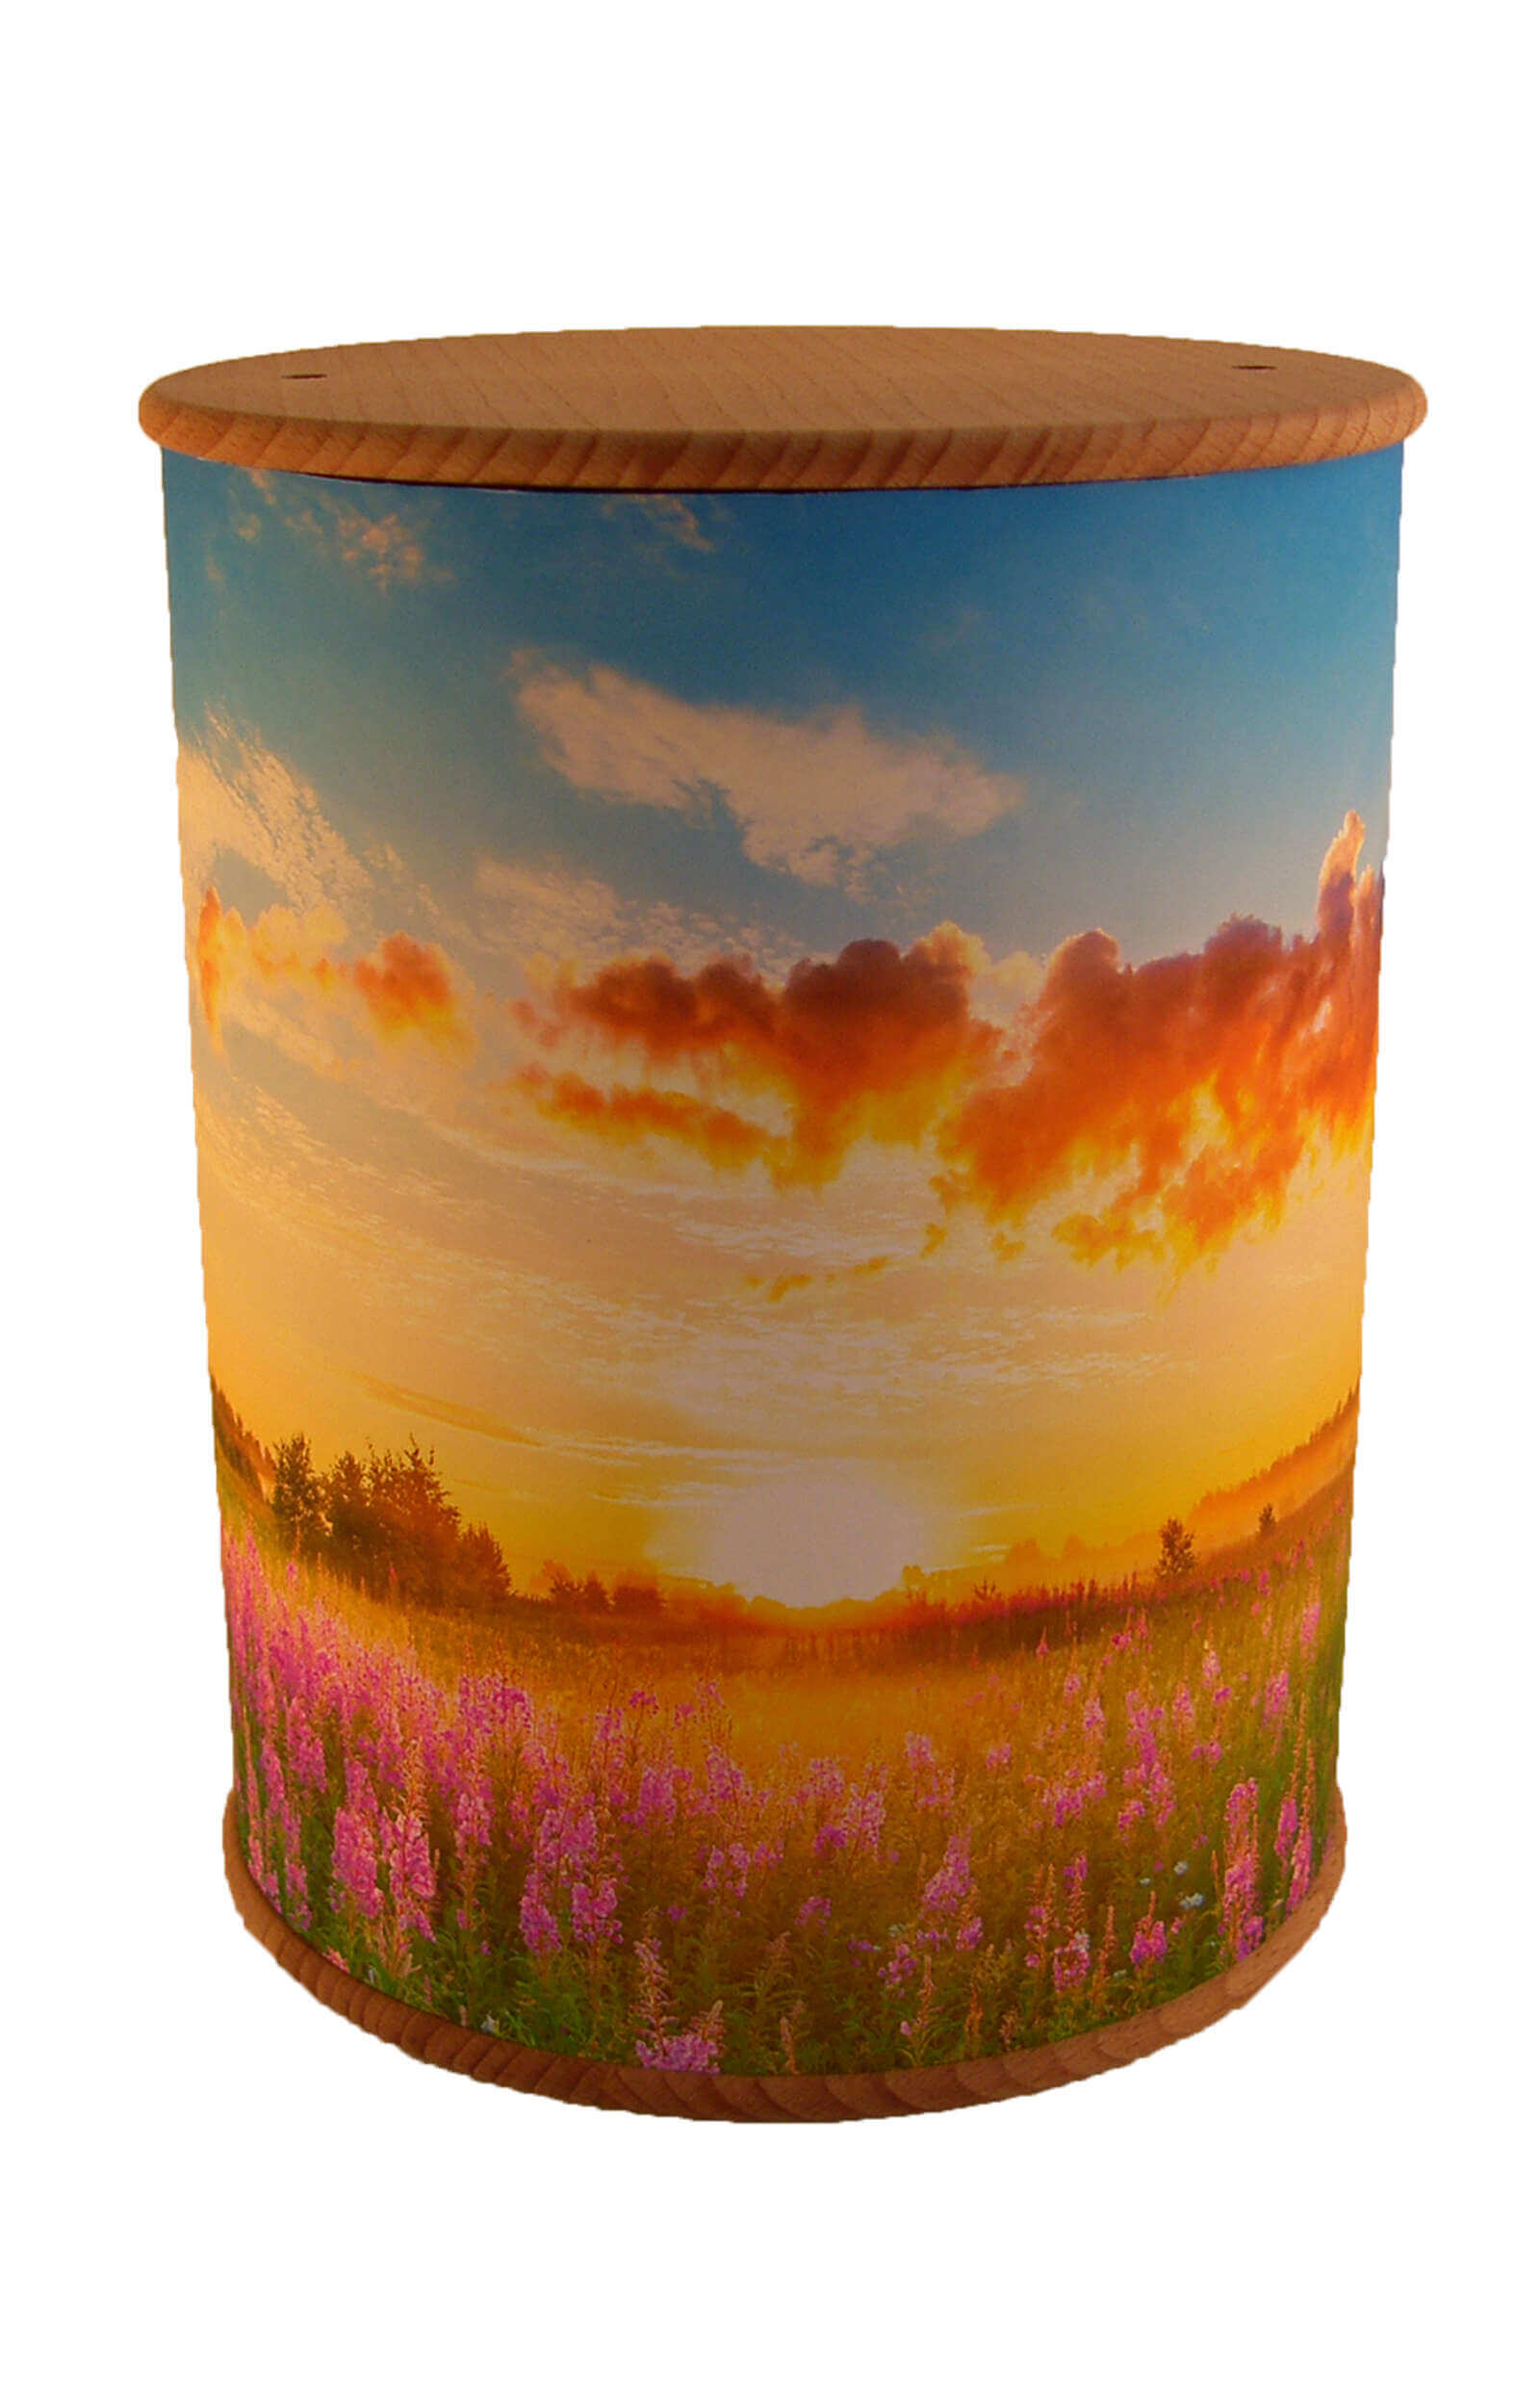 en ZB001 photo urn wildflower meadow funeral urns for human ashes